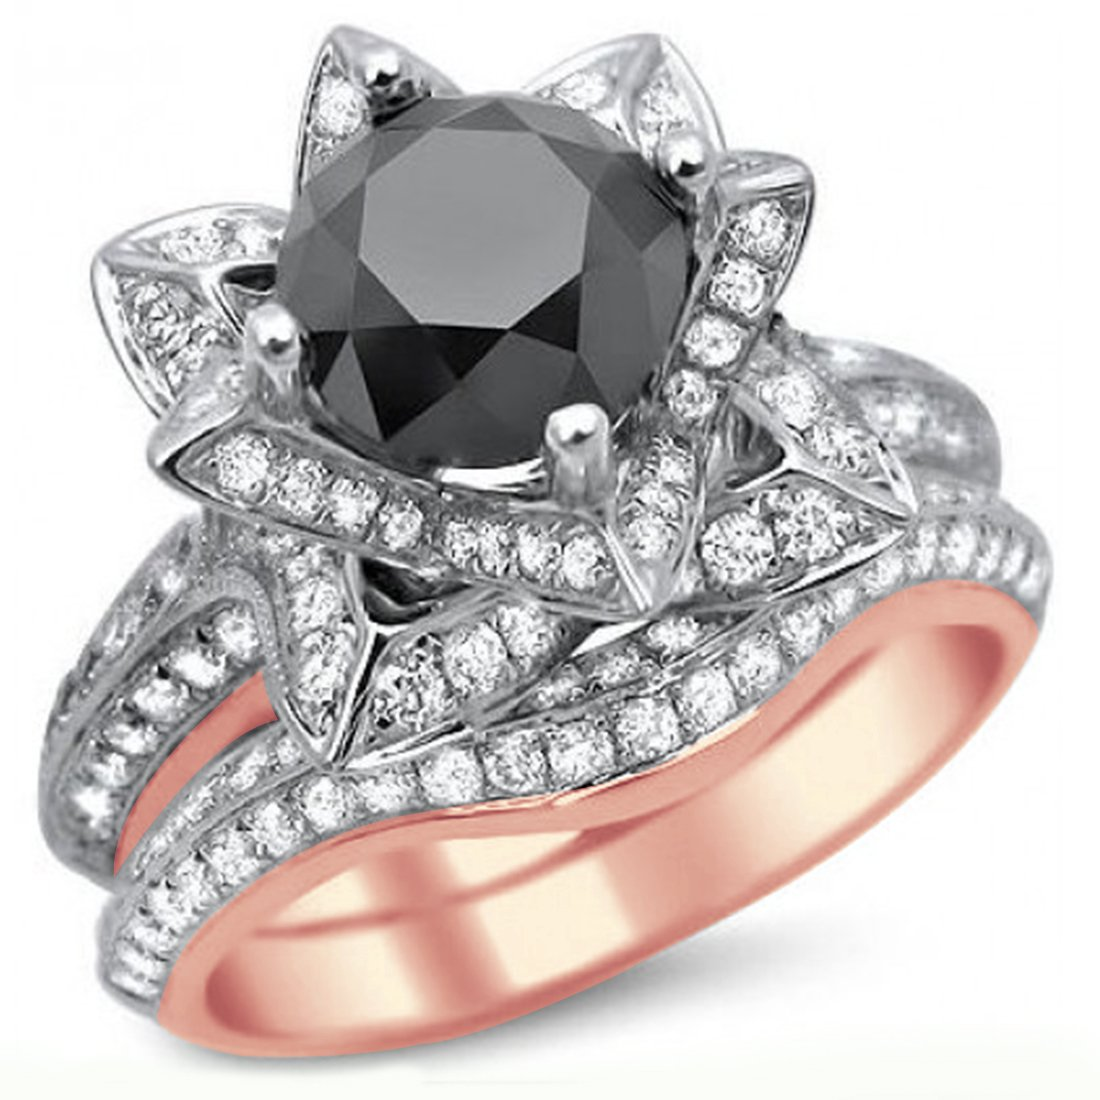 Smjewels 3.55 Ct Black Round Sim.Diamond Lotus Flower Engagement Ring Set In 14K Rose Gold Fn